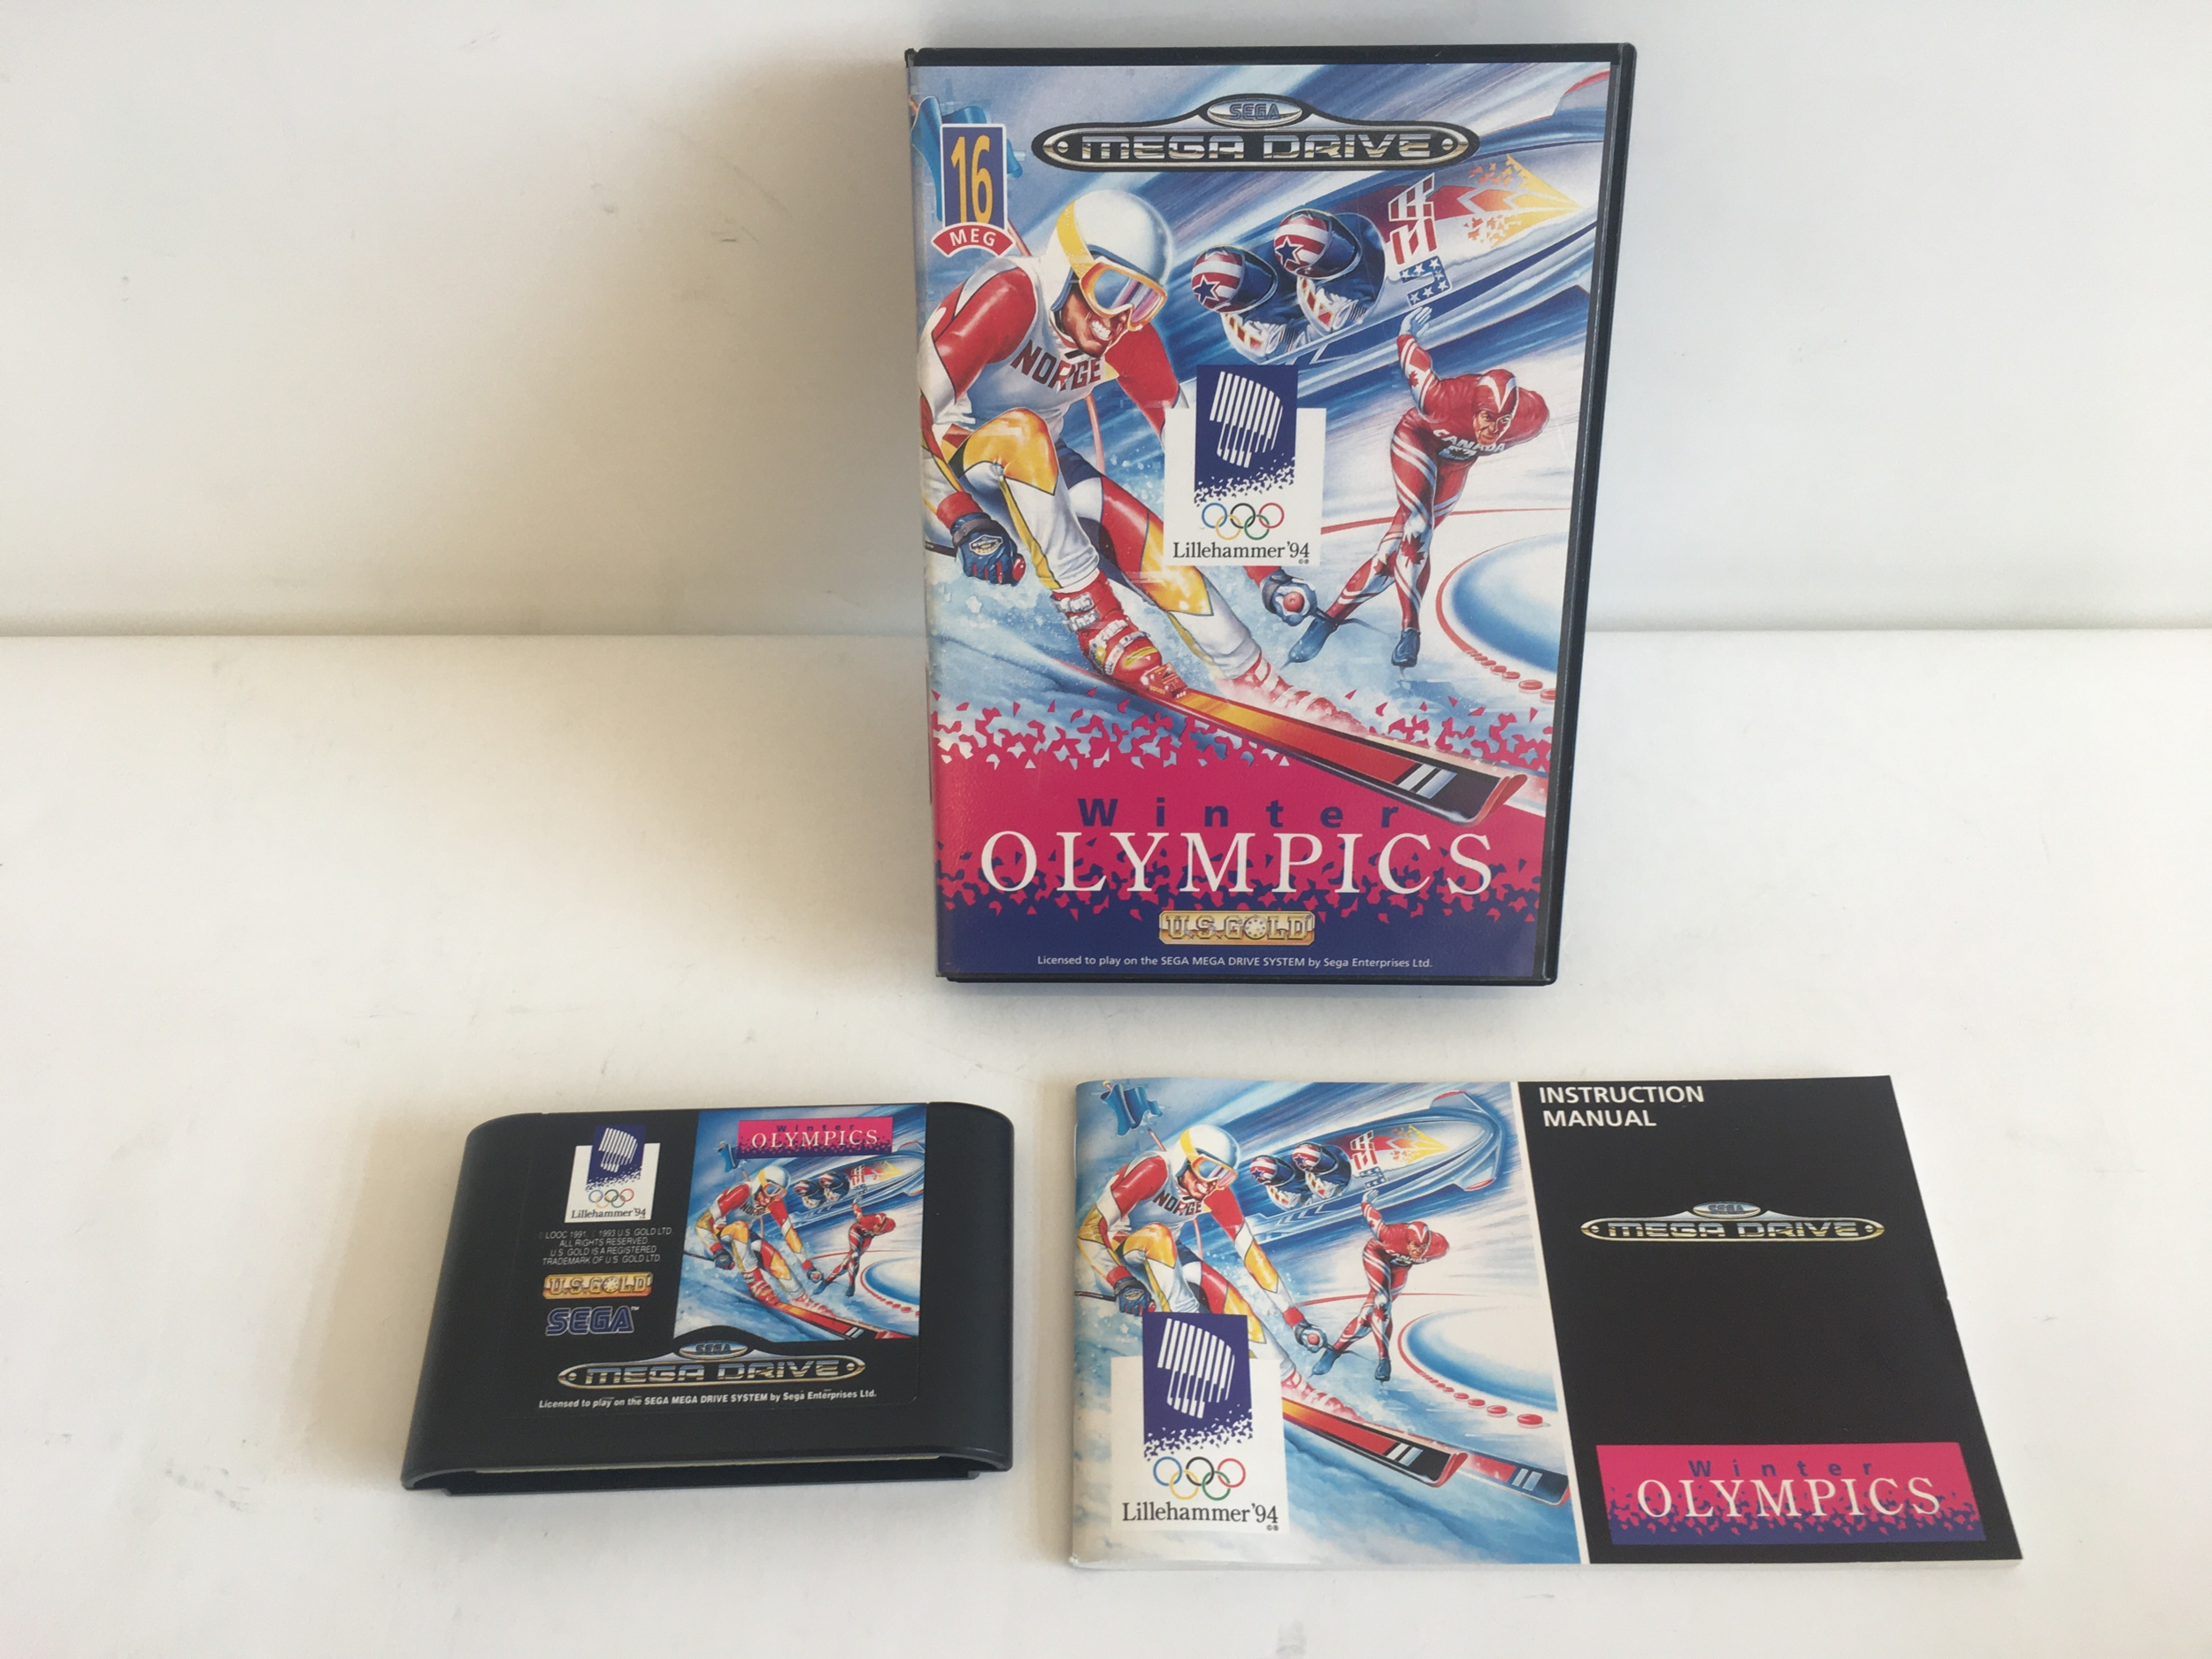 Winter Olympics US Gold Mega Drive